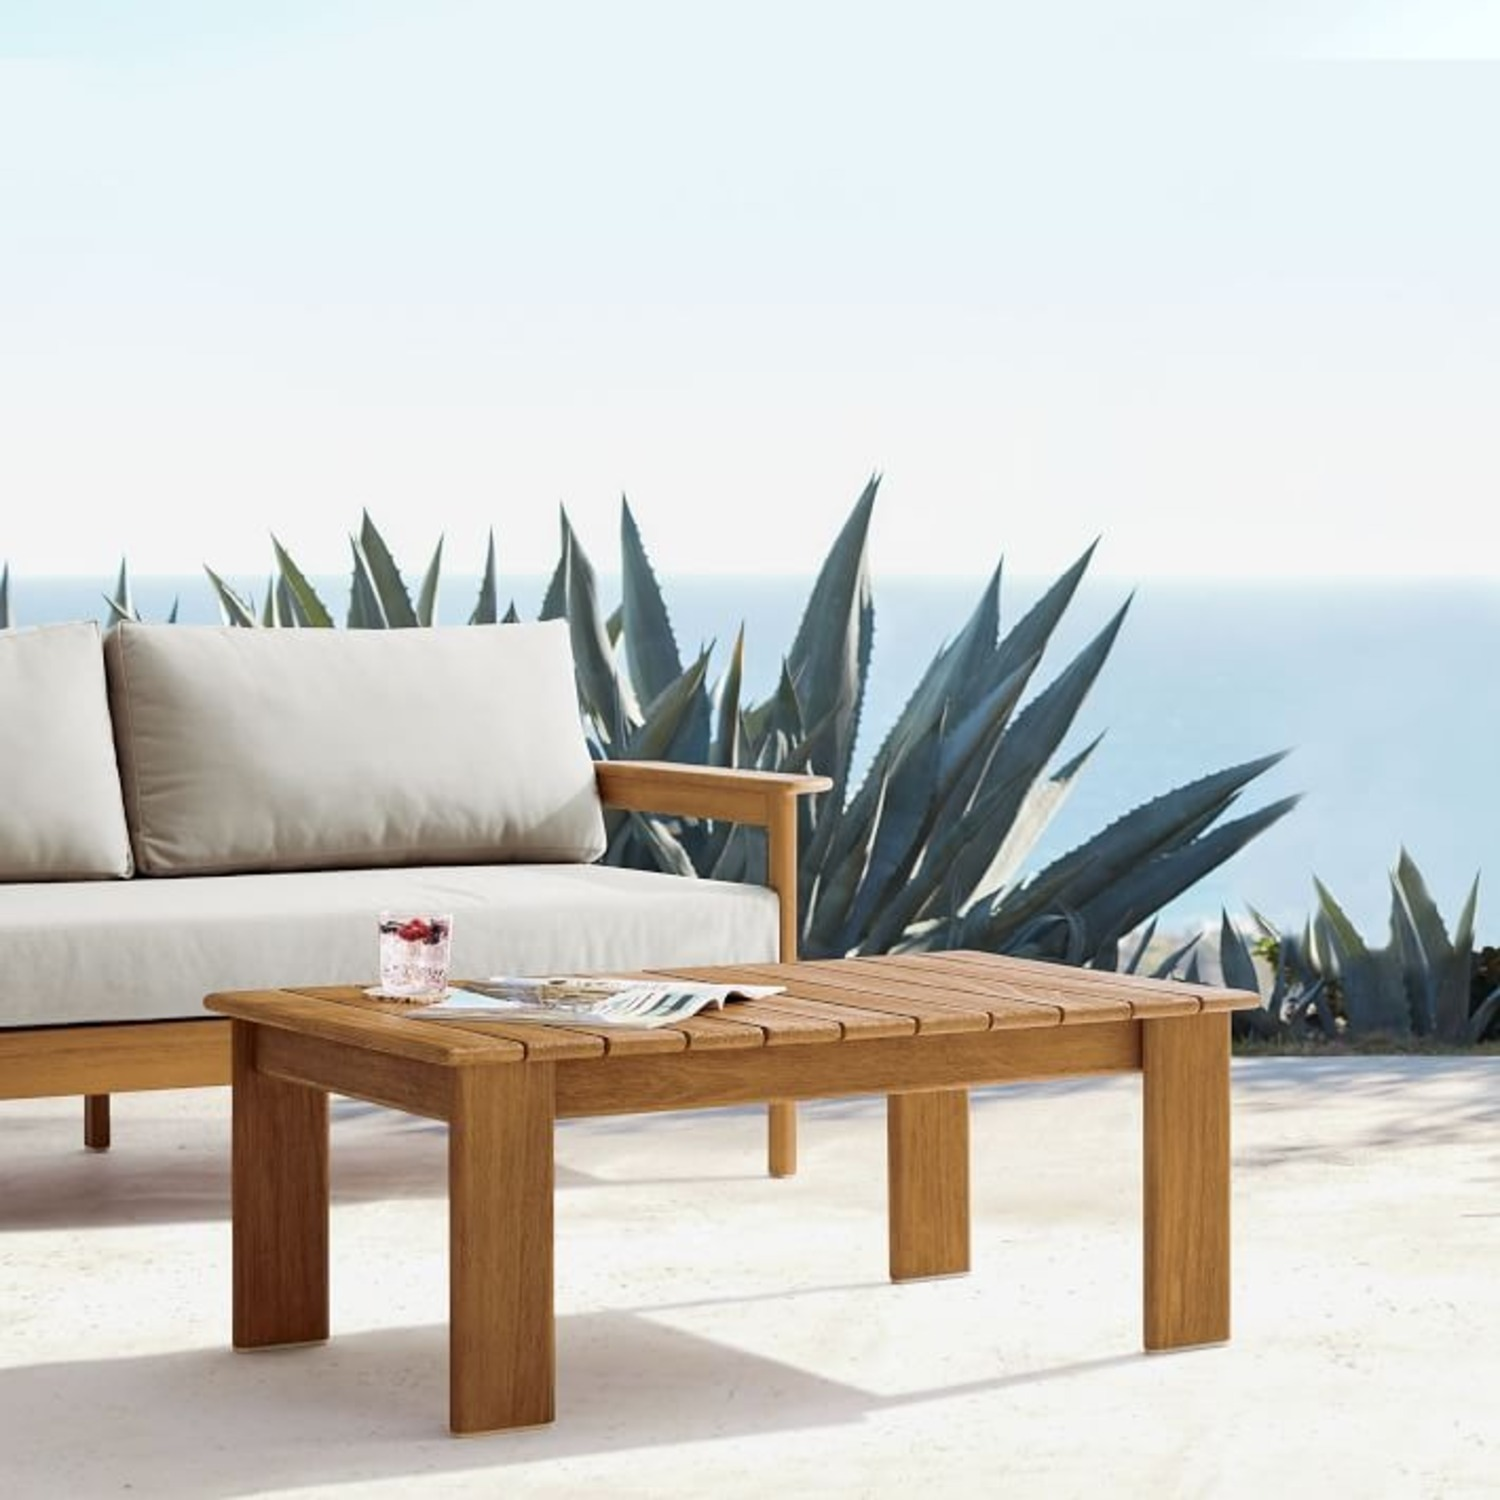 West Elm Playa Outdoor Coffee Table - image-2